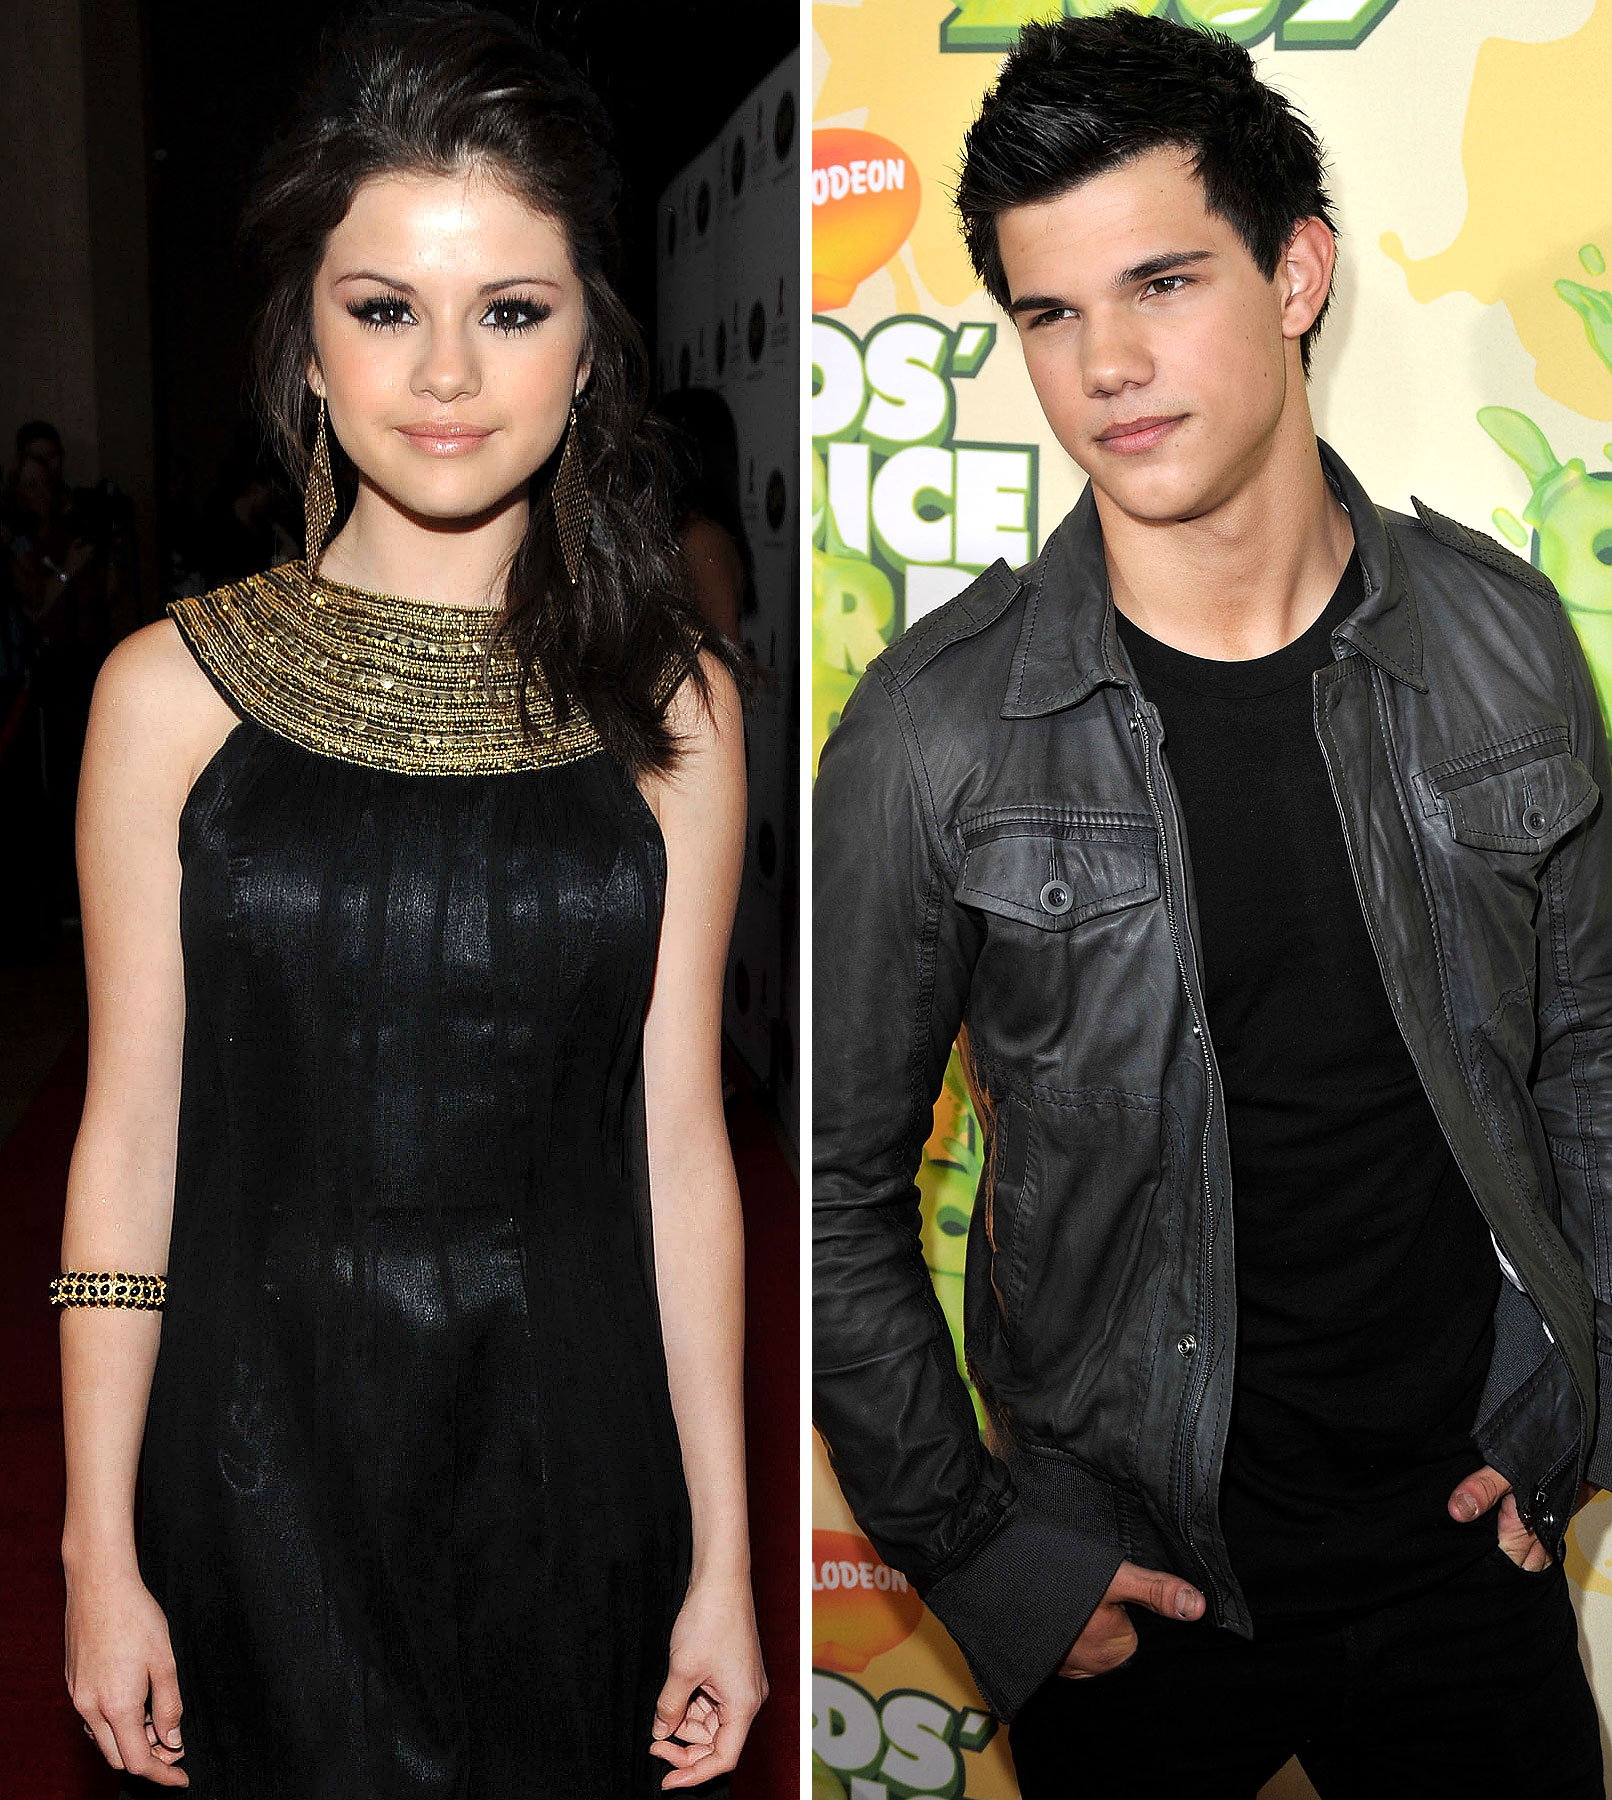 Taylor Lautner and Selena Gomez Caught Kissing!